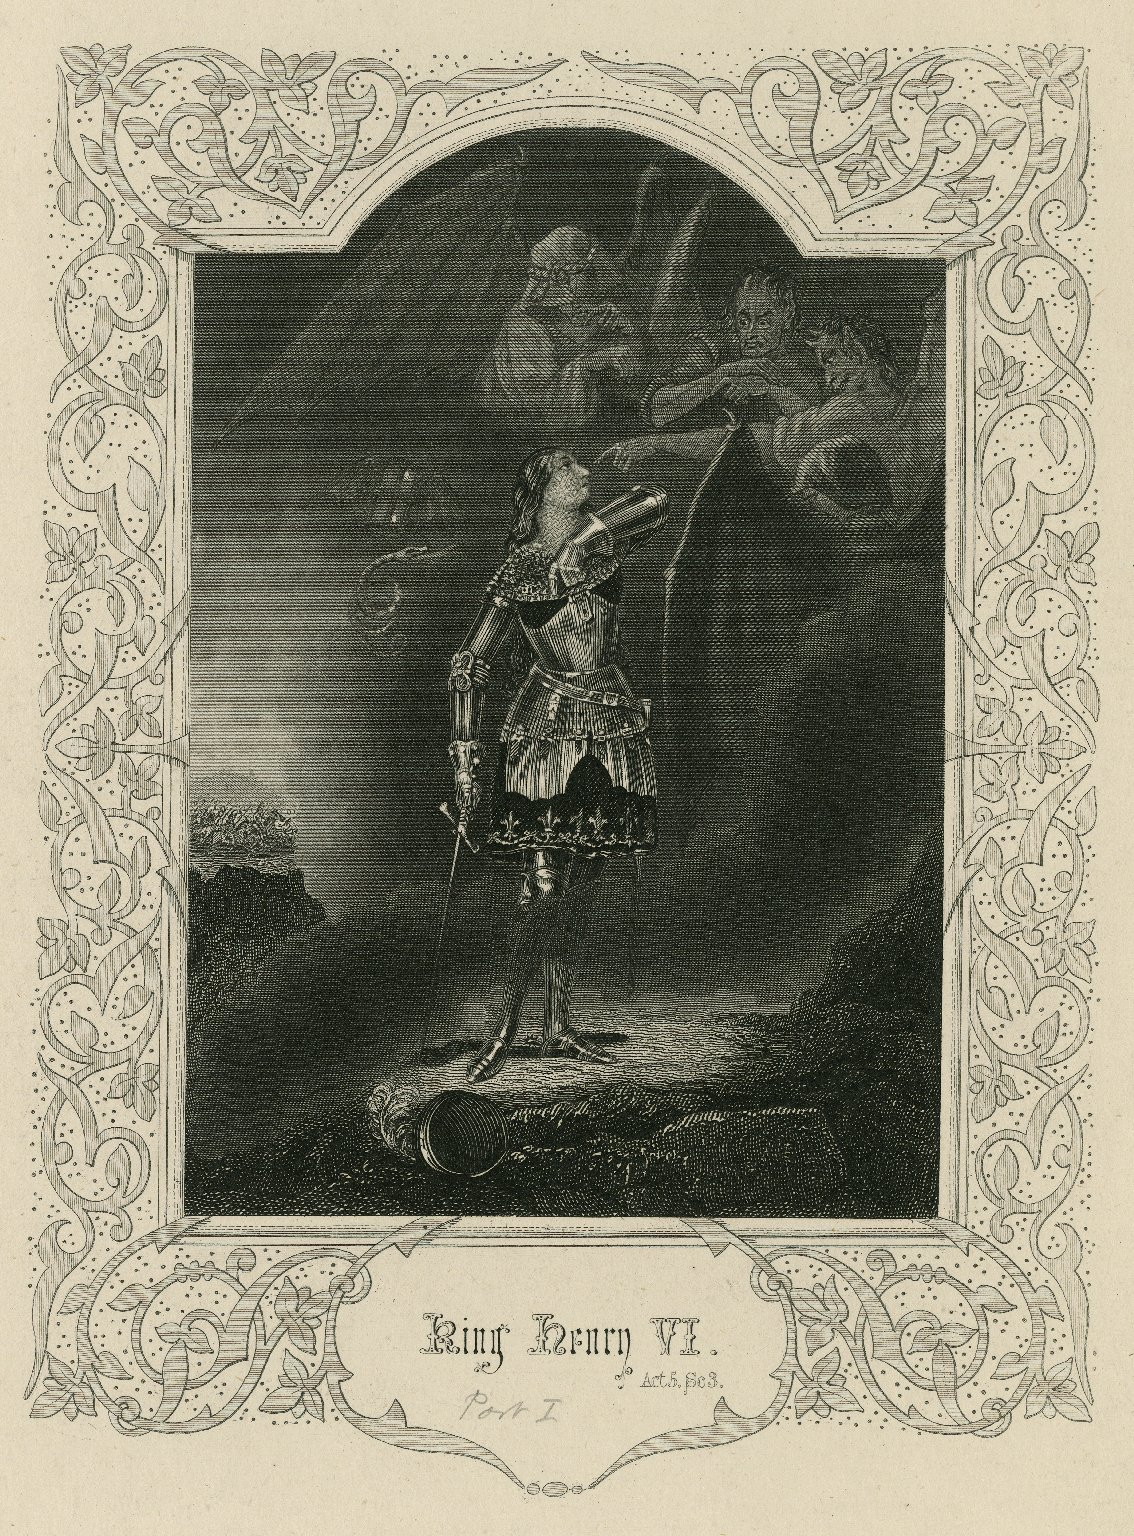 King Henry IV act 5, sc. 3 [graphic] / [engraved by J. Moore, from the original painting by E.H. Corbould].